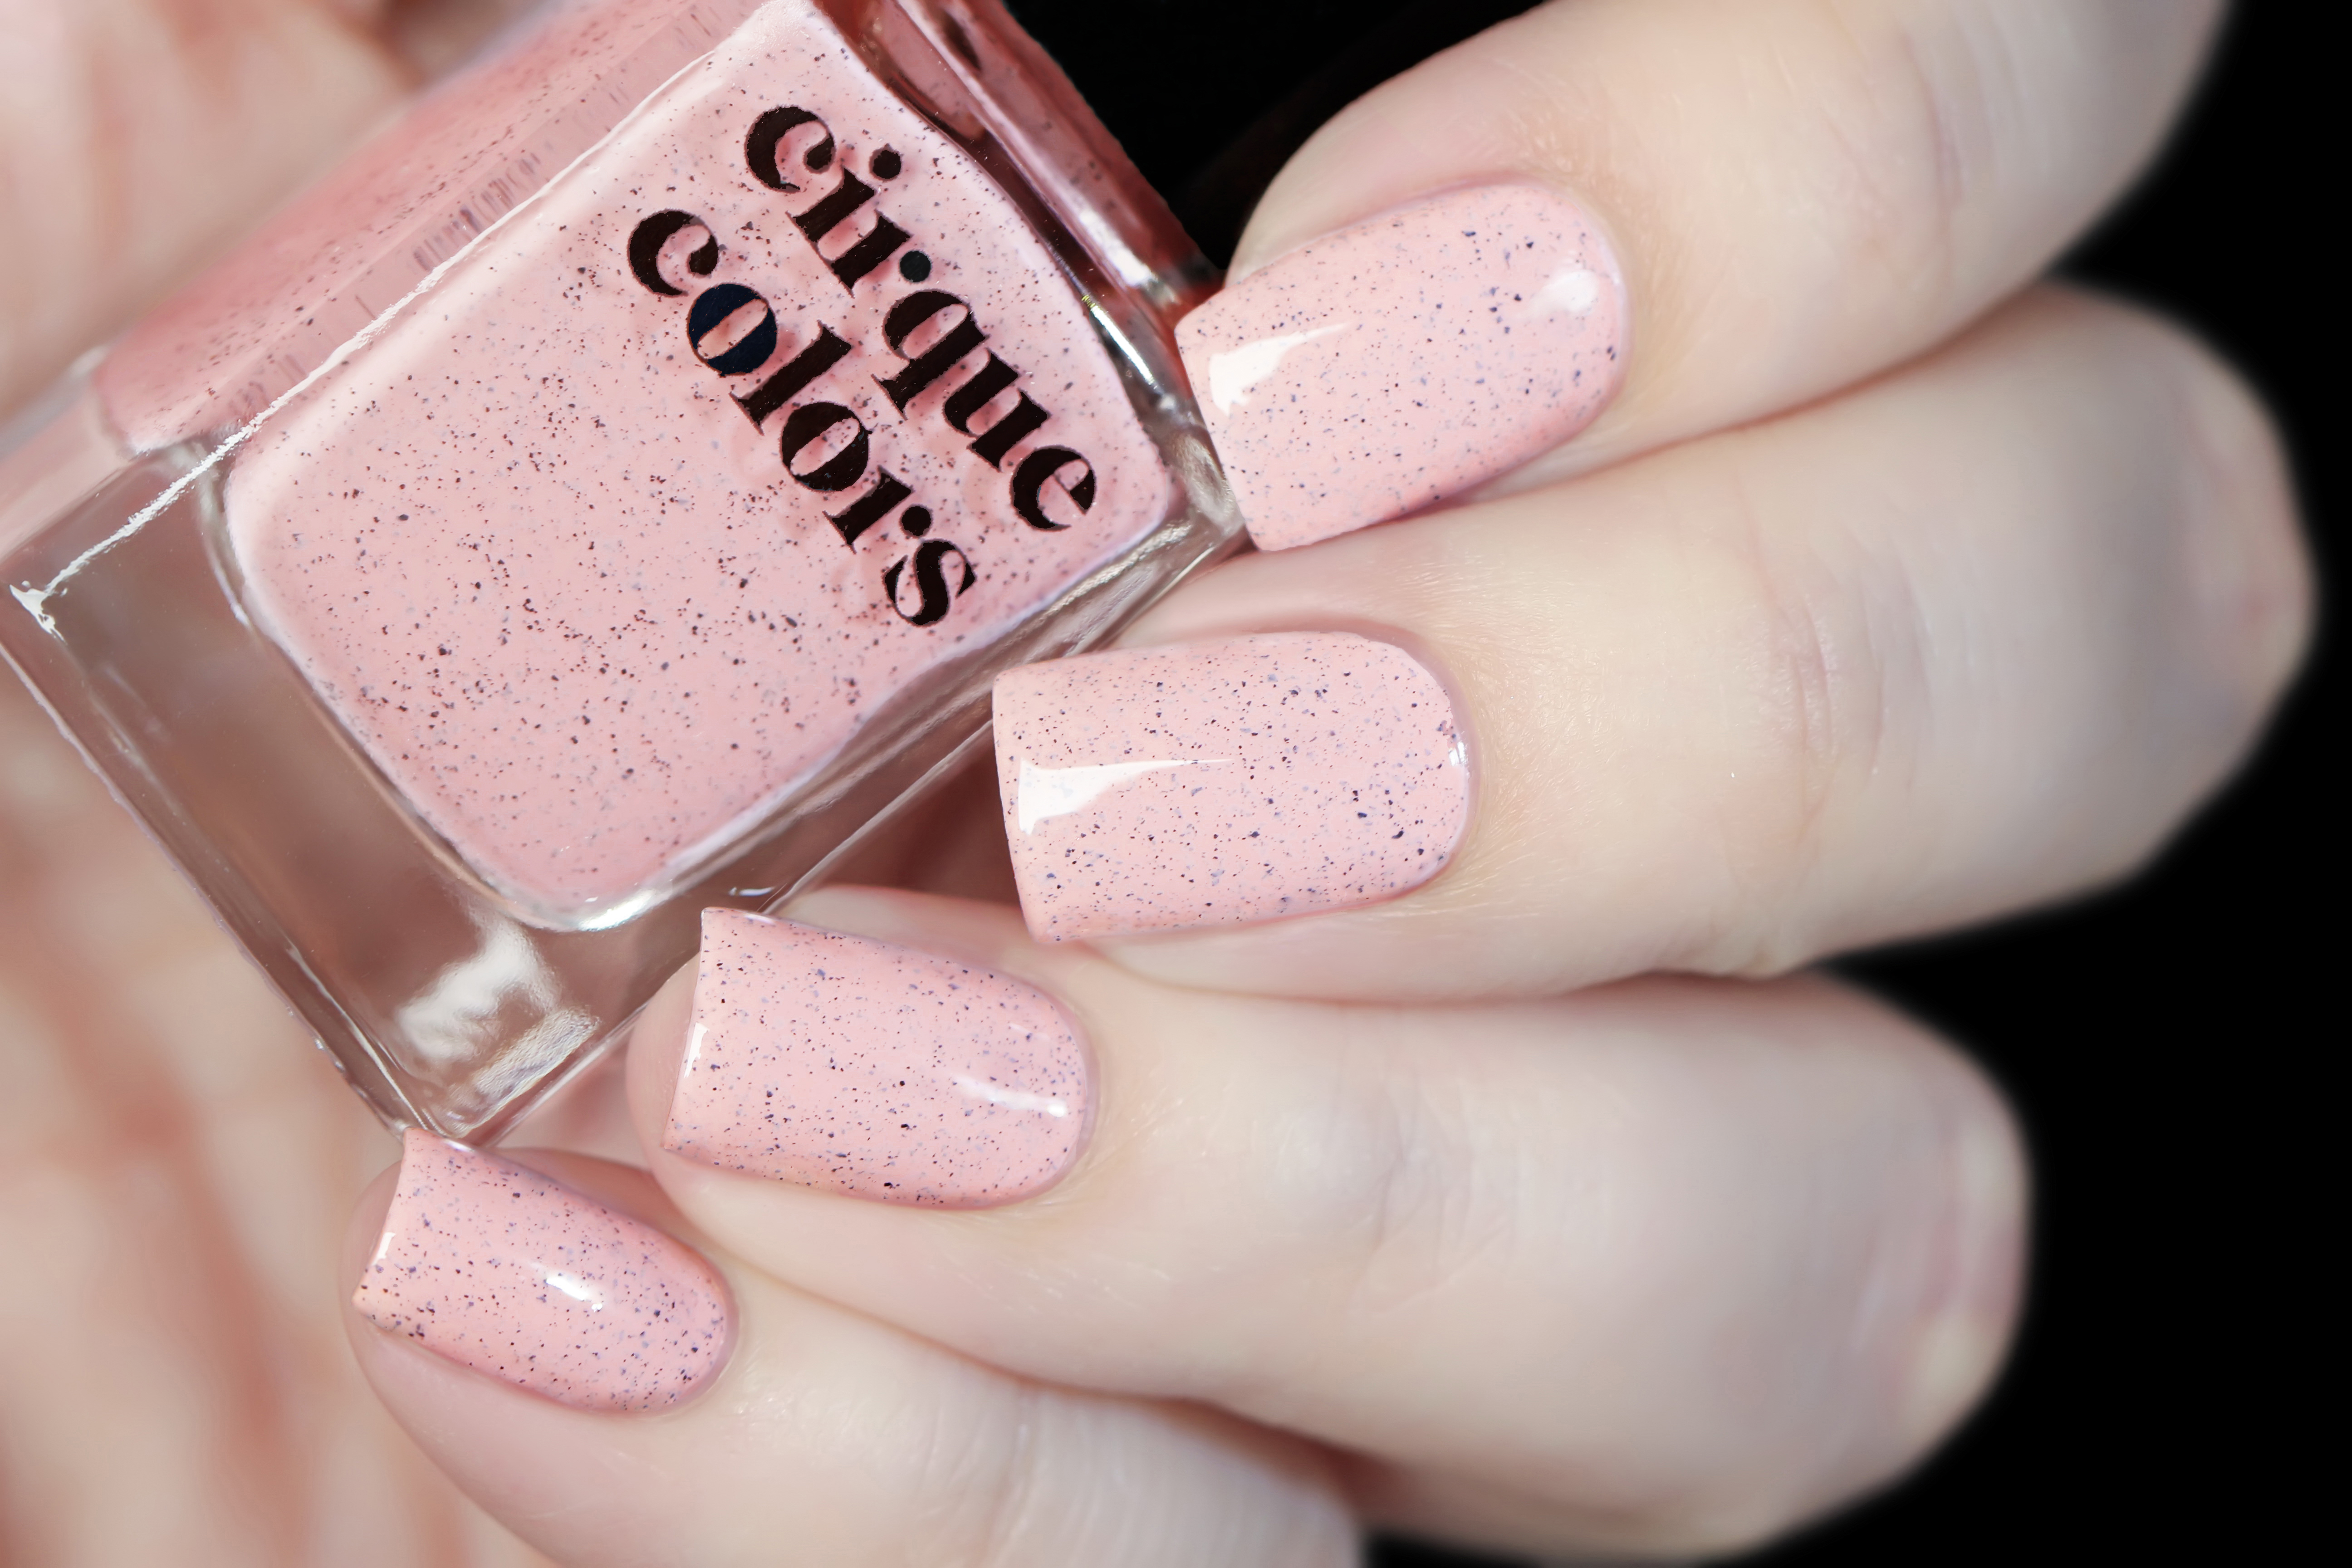 Best nude pink nail polish colors